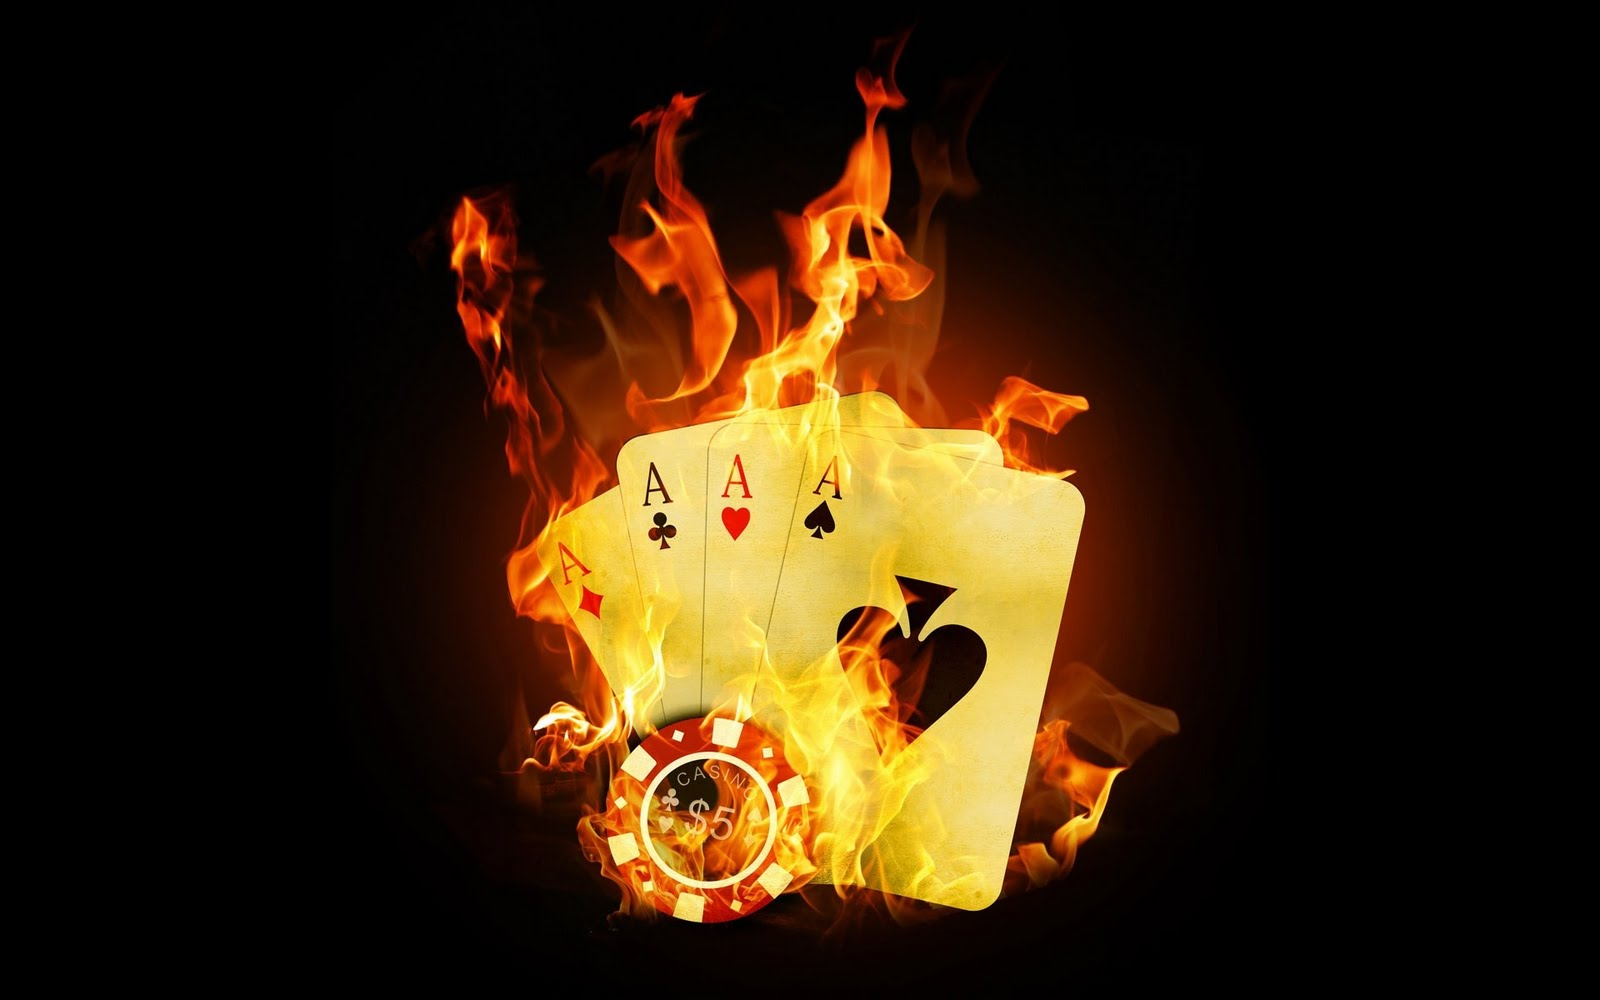 Playing Fire Wallpaper Free: Dark Black Fire Playing Cards Ace HD Wallpapers Picture